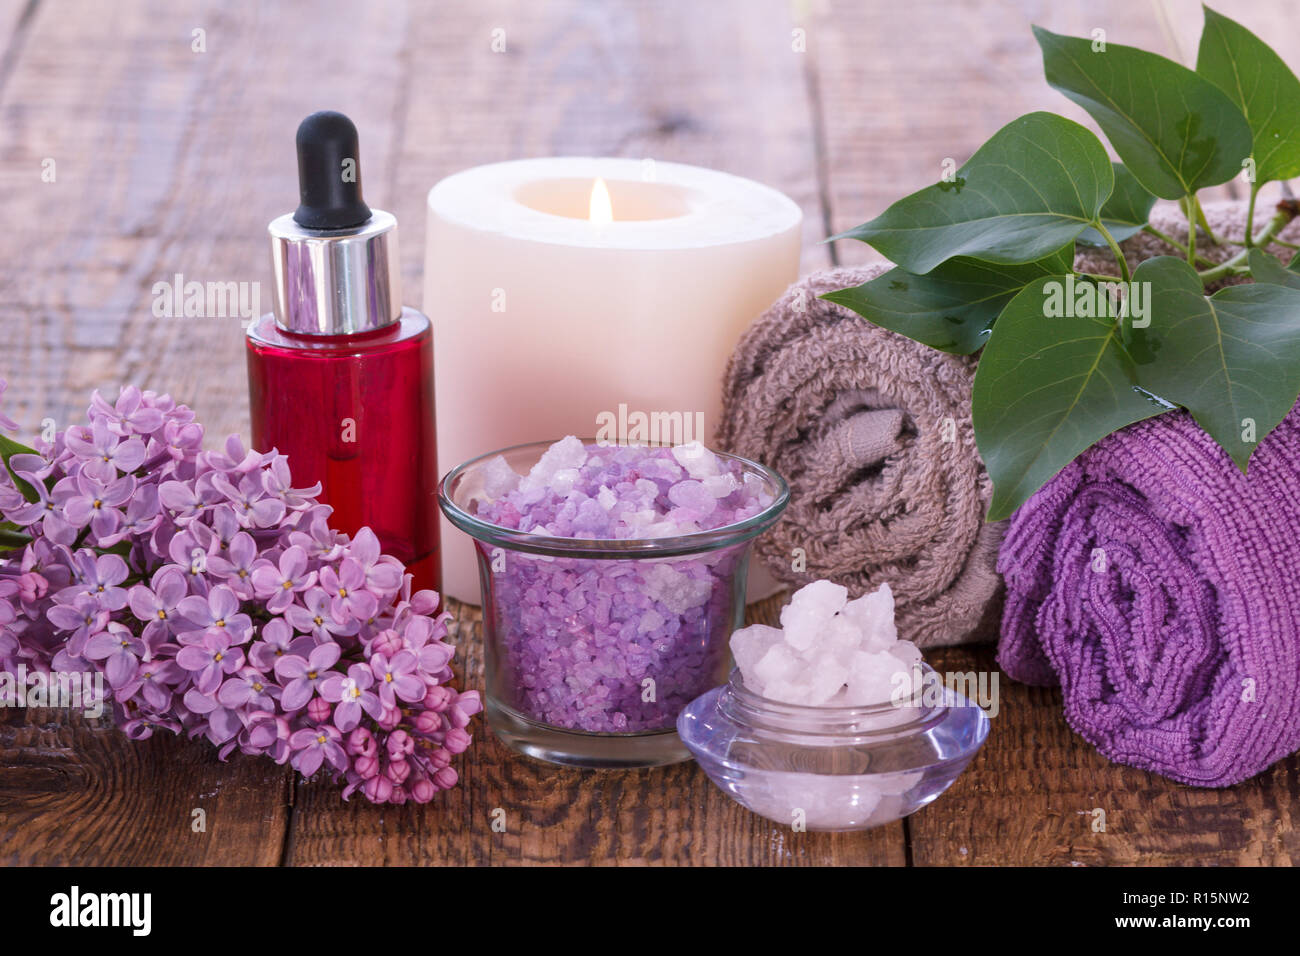 Lilac flowers, red bottle with aromatic oil, burning candle